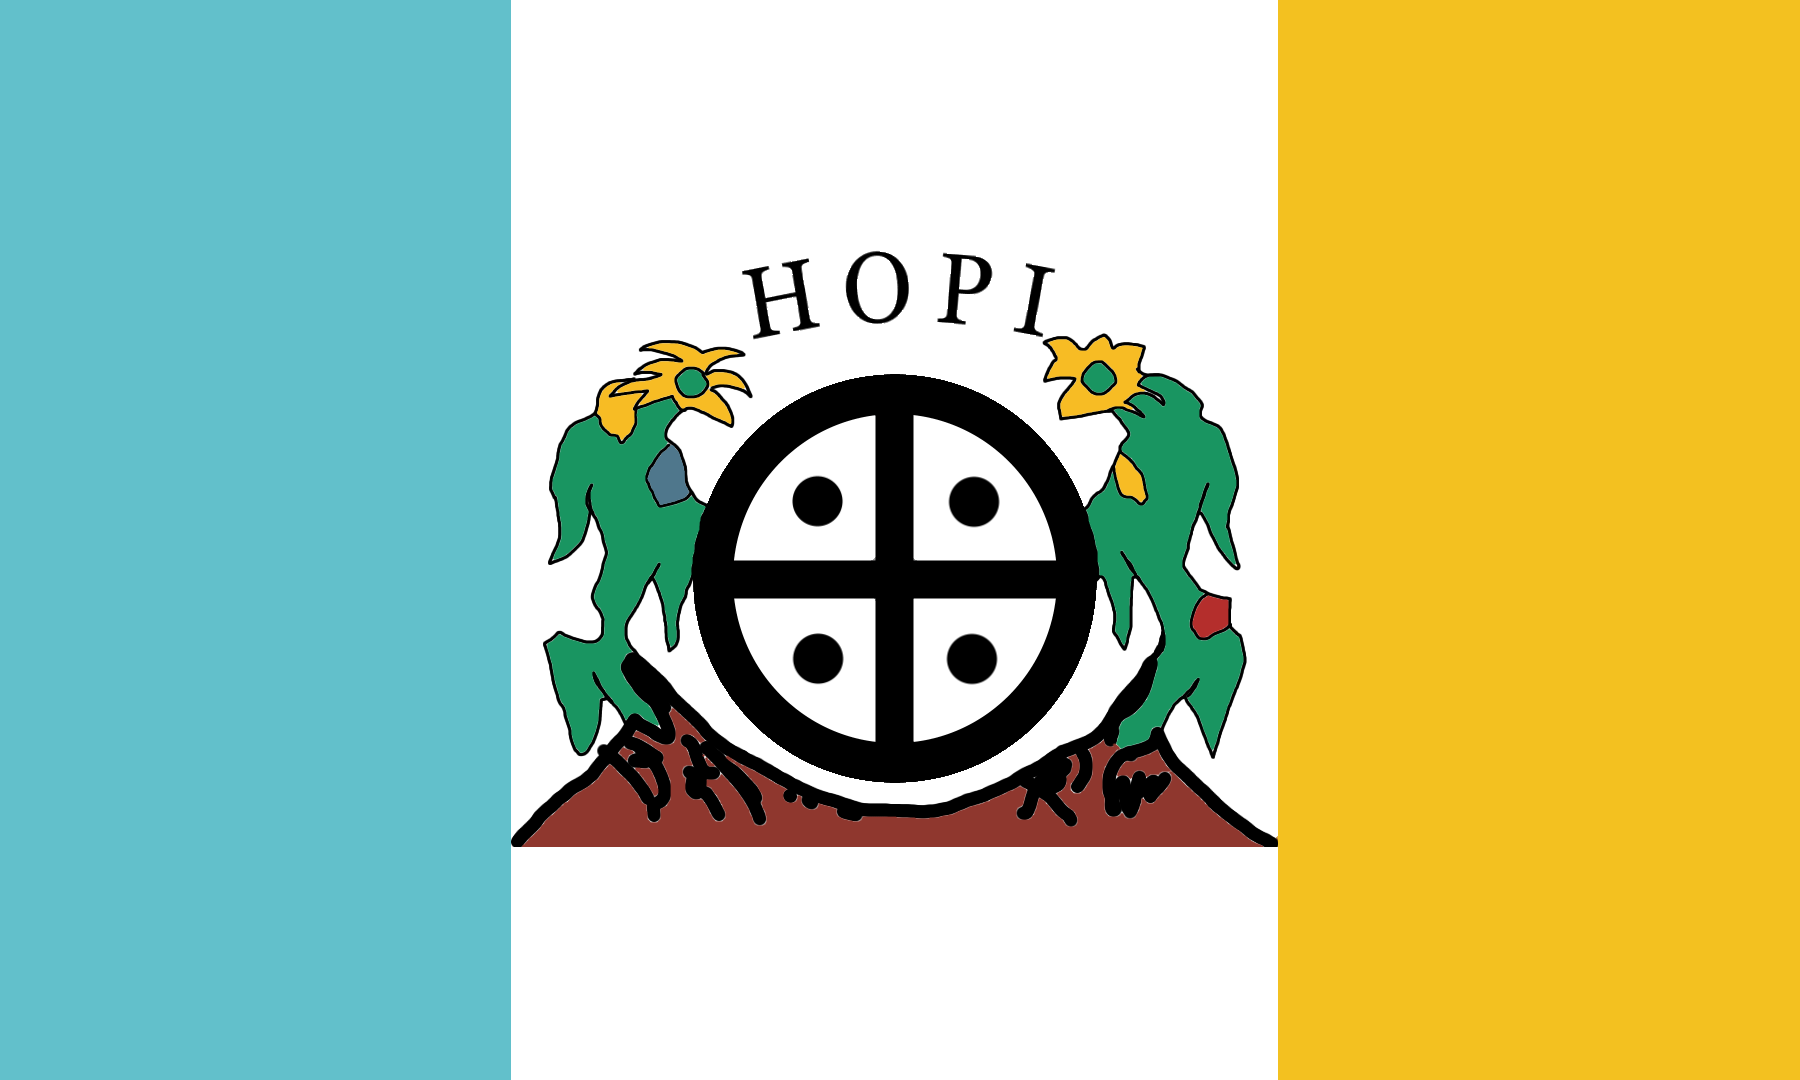 Hopi ethnic group